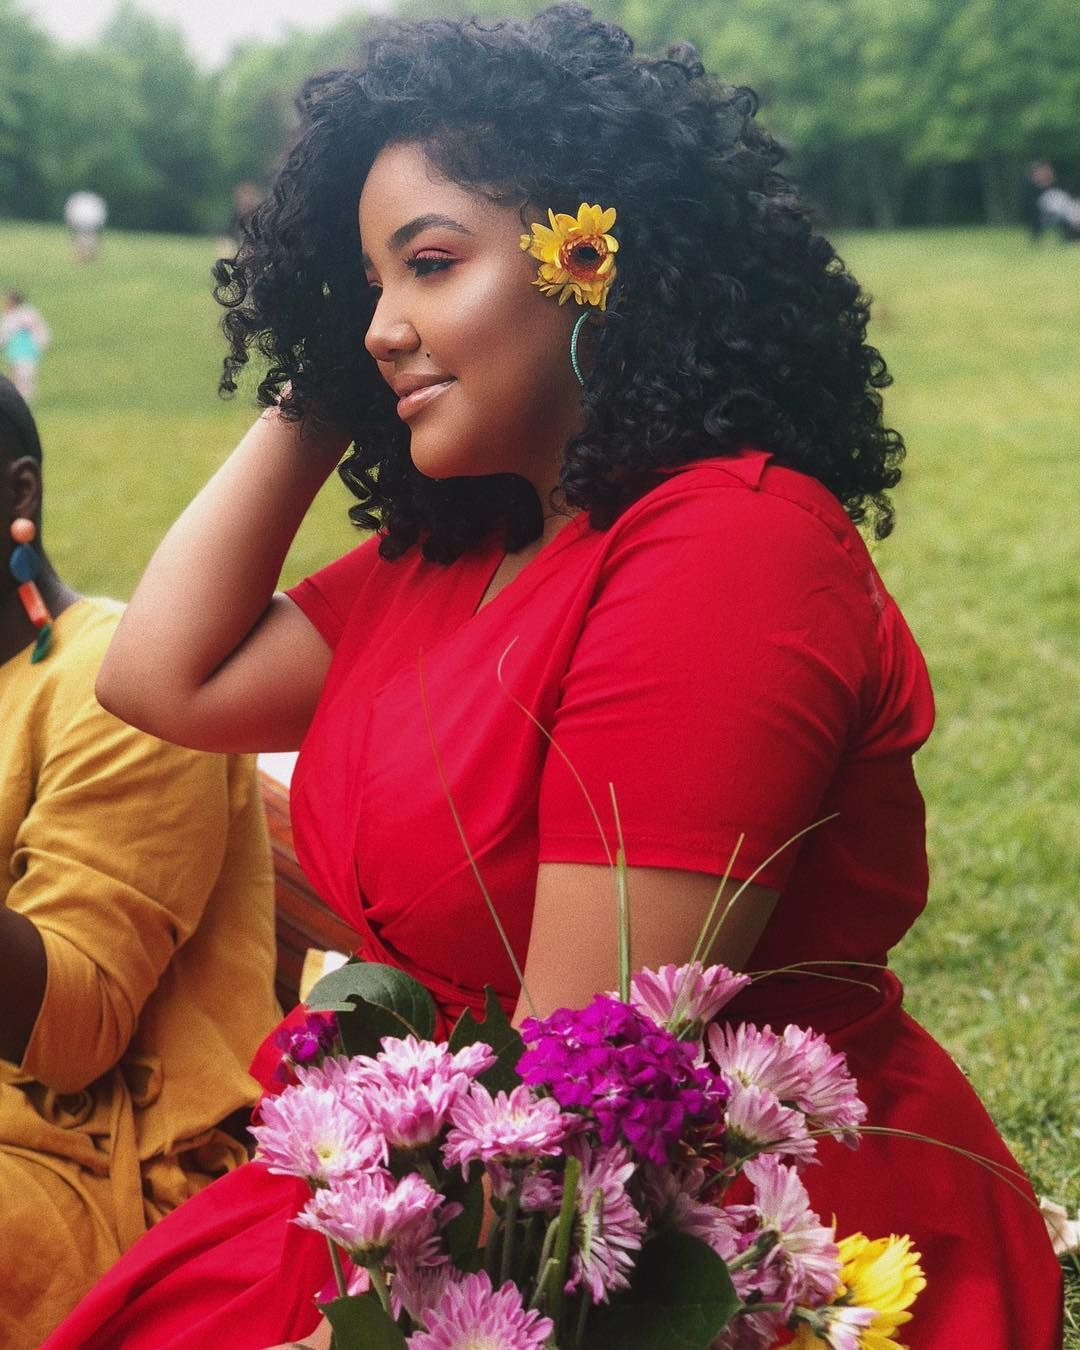 Beautymarked Illy Flowers Red Dress Plus Size Plus Size Women Curly Hair Natural Hai Curly Hair Styles Curly Hair Styles Naturally Natural Hair Styles